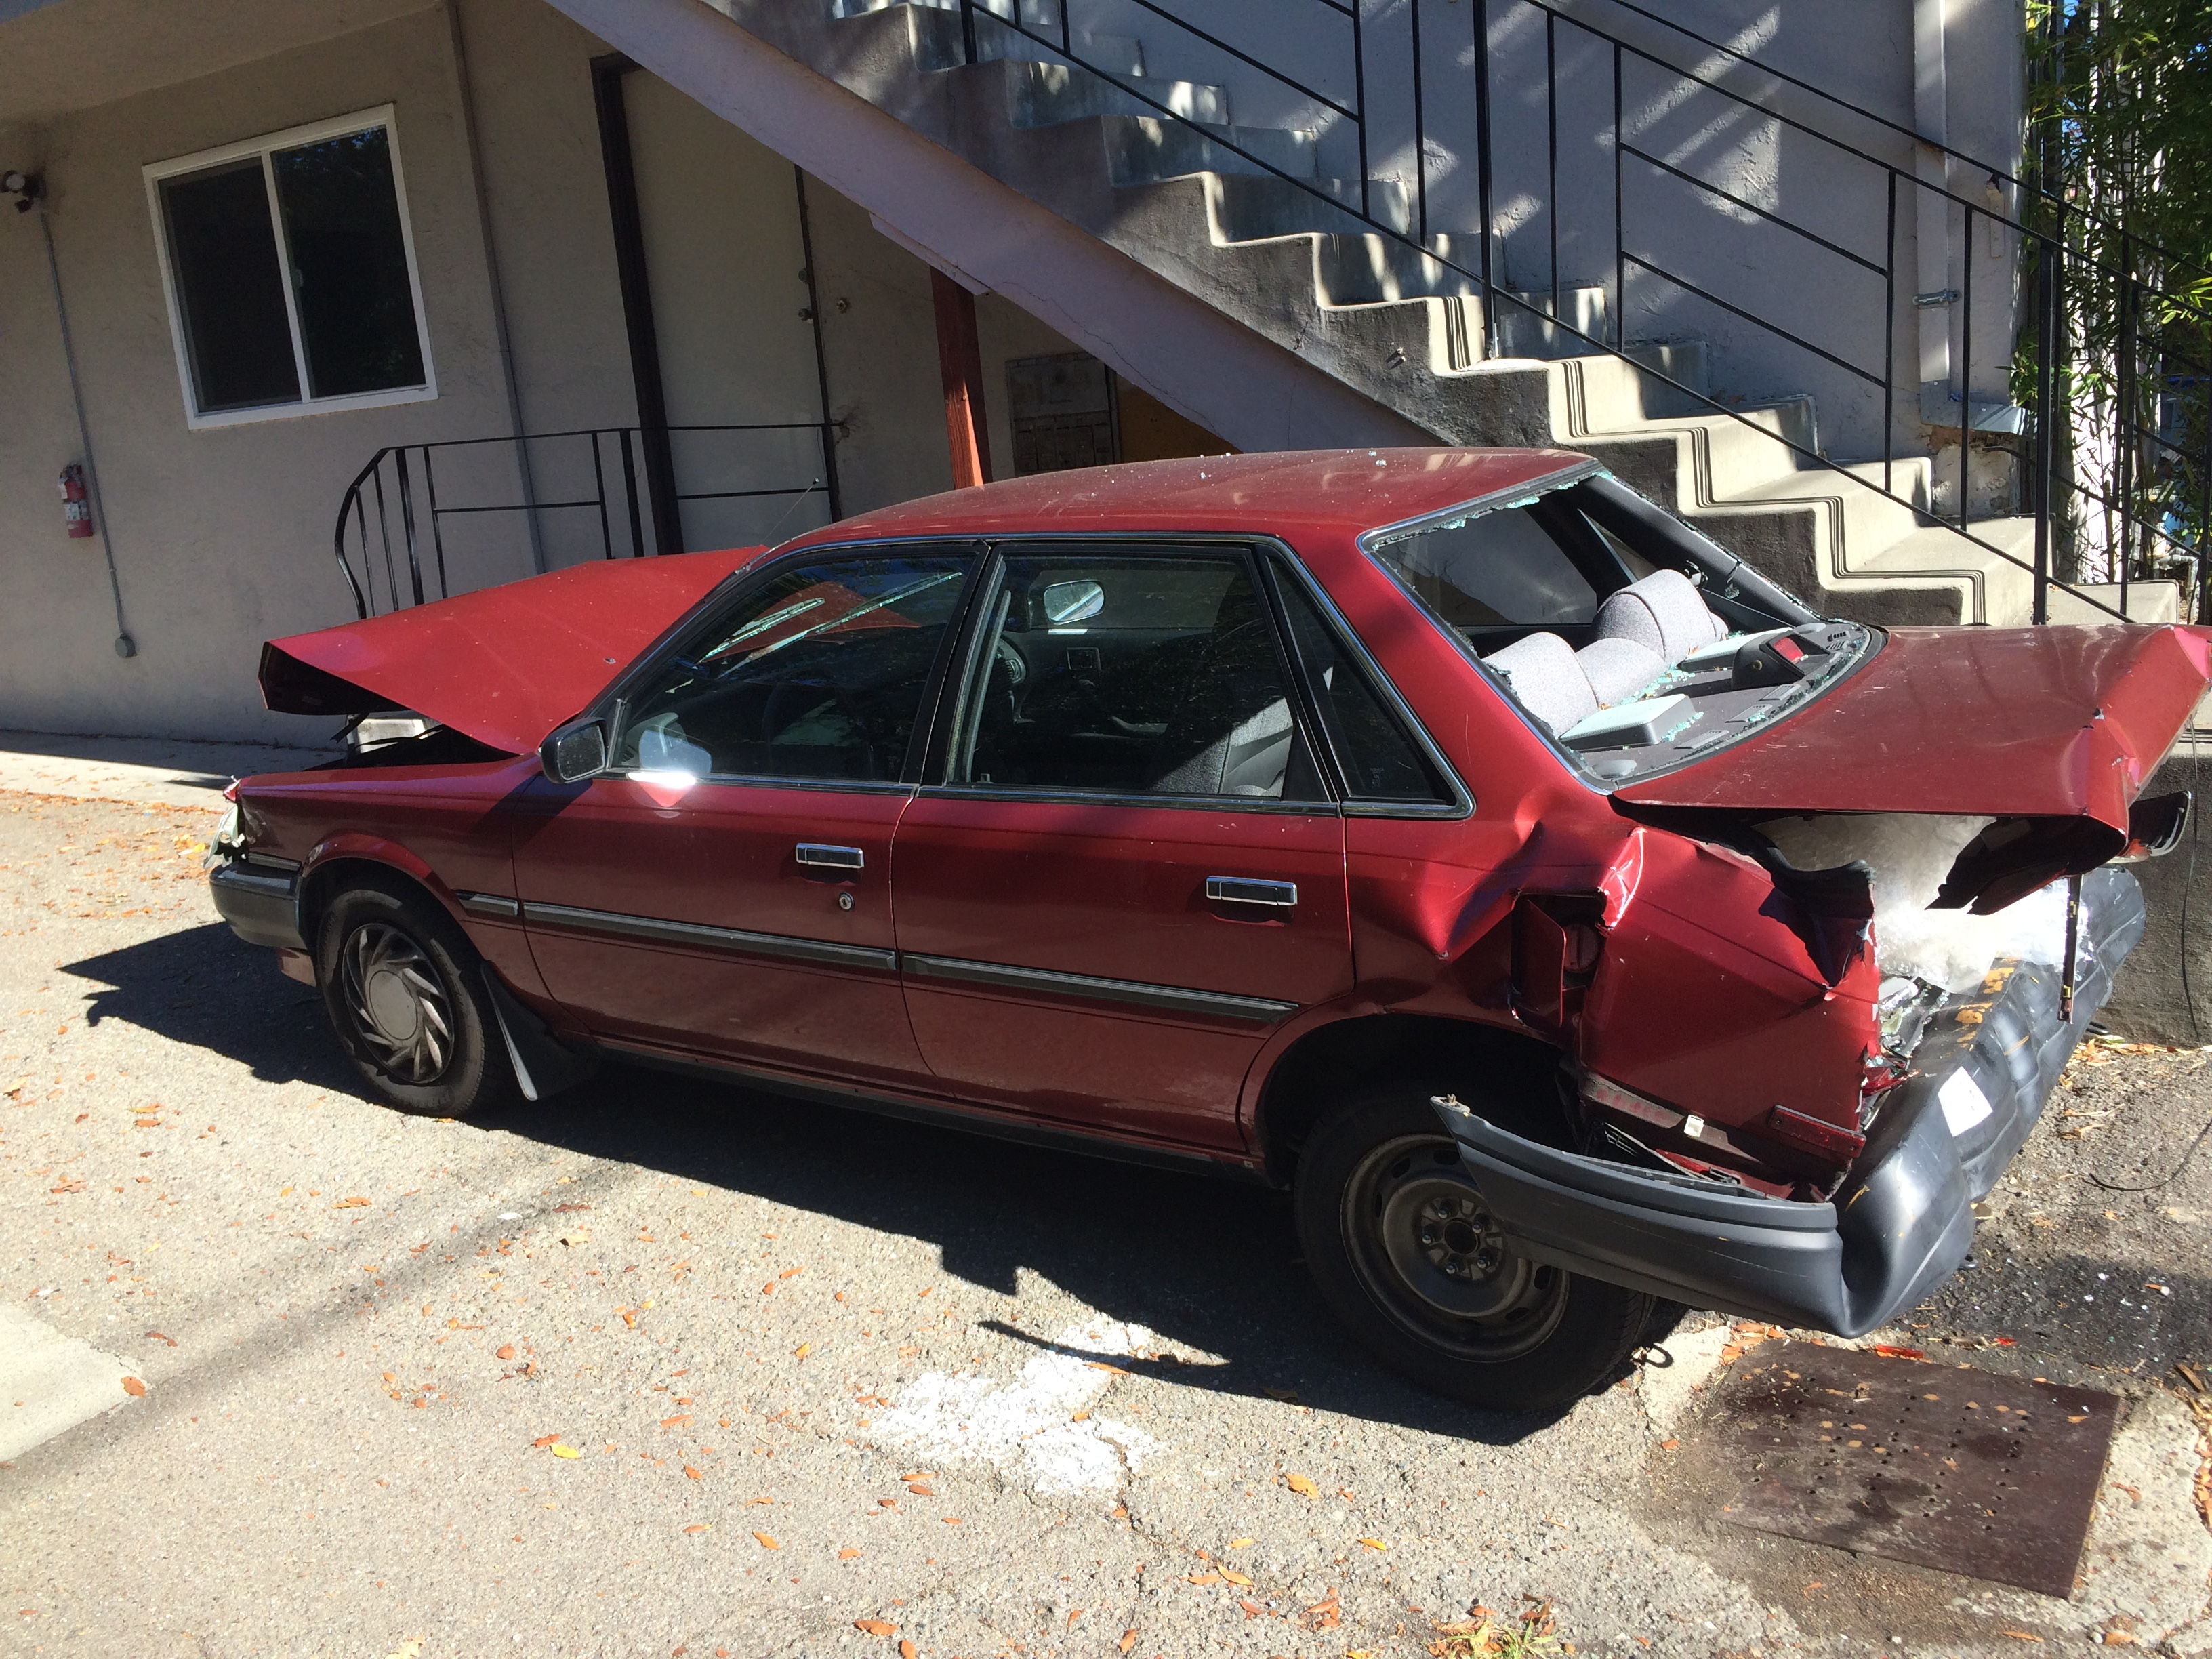 Cash for Cars Milford, DE | Sell Your Junk Car | The Clunker Junker